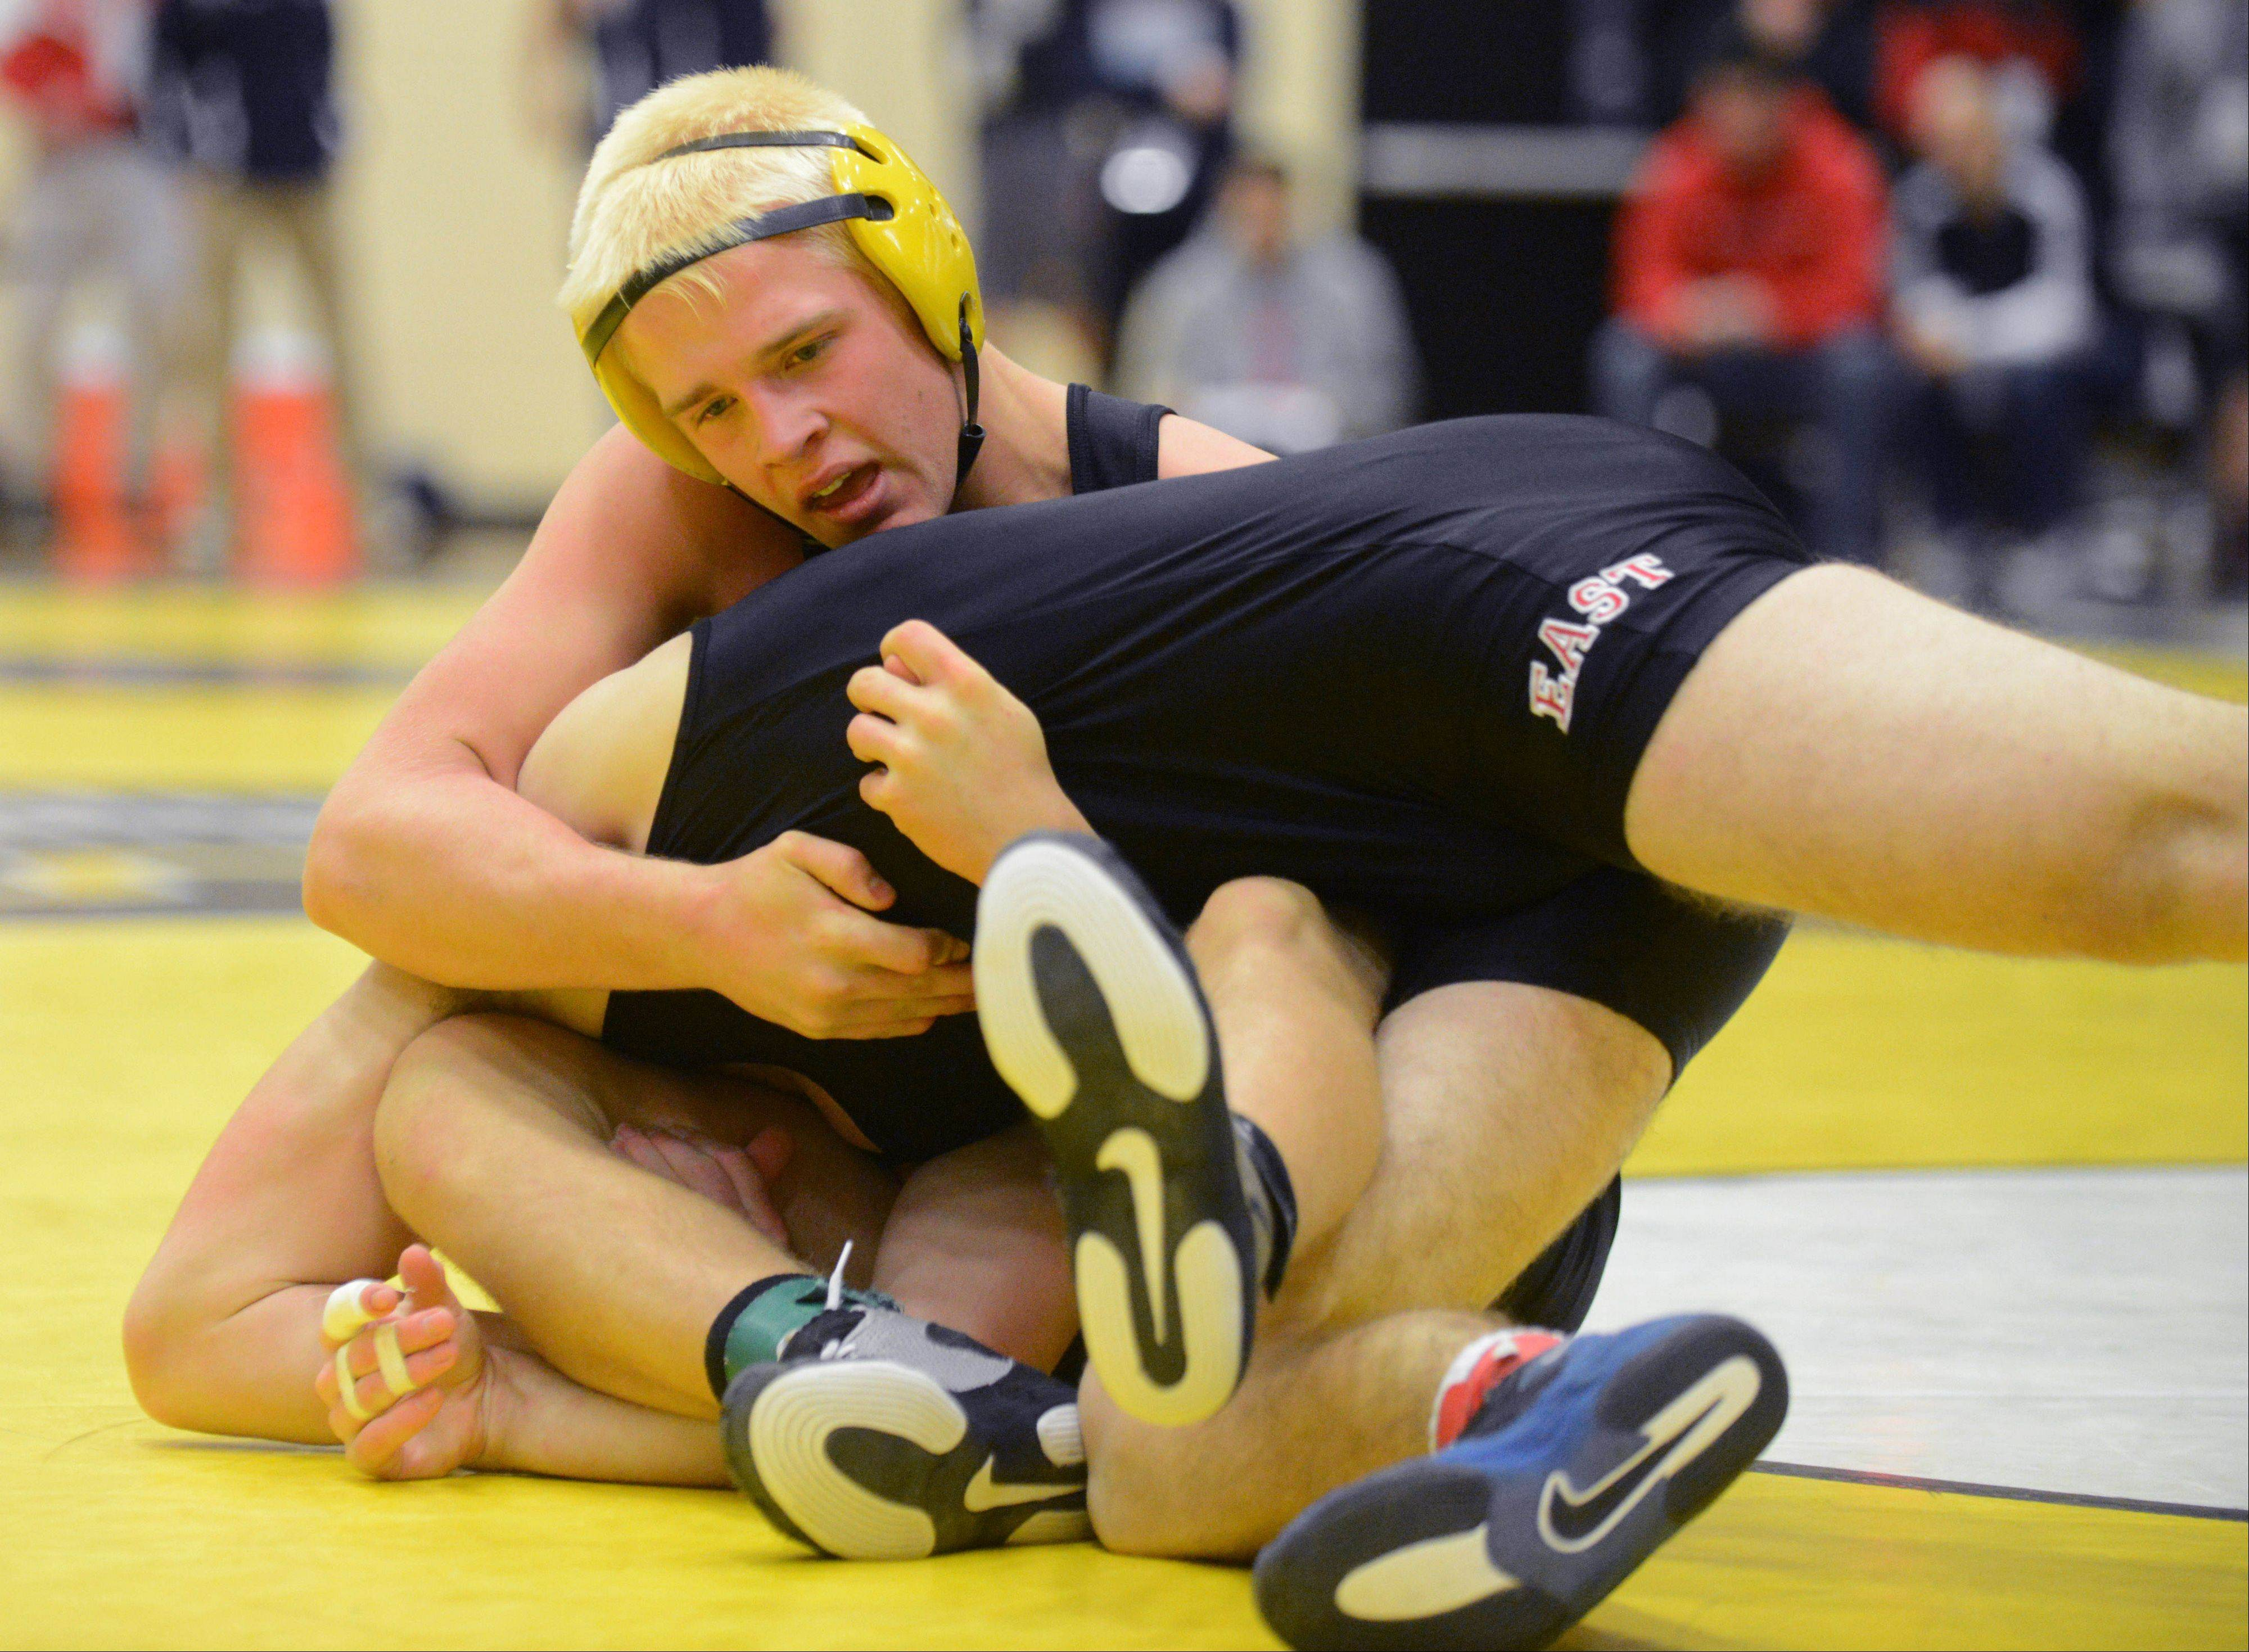 Colton Wegner of Glenbard North,top, and Jake Lueck of Glenbard East take part in a 170 pound match during the DuPage Valley Conference wrestling meet in Carol Stream Saturday.